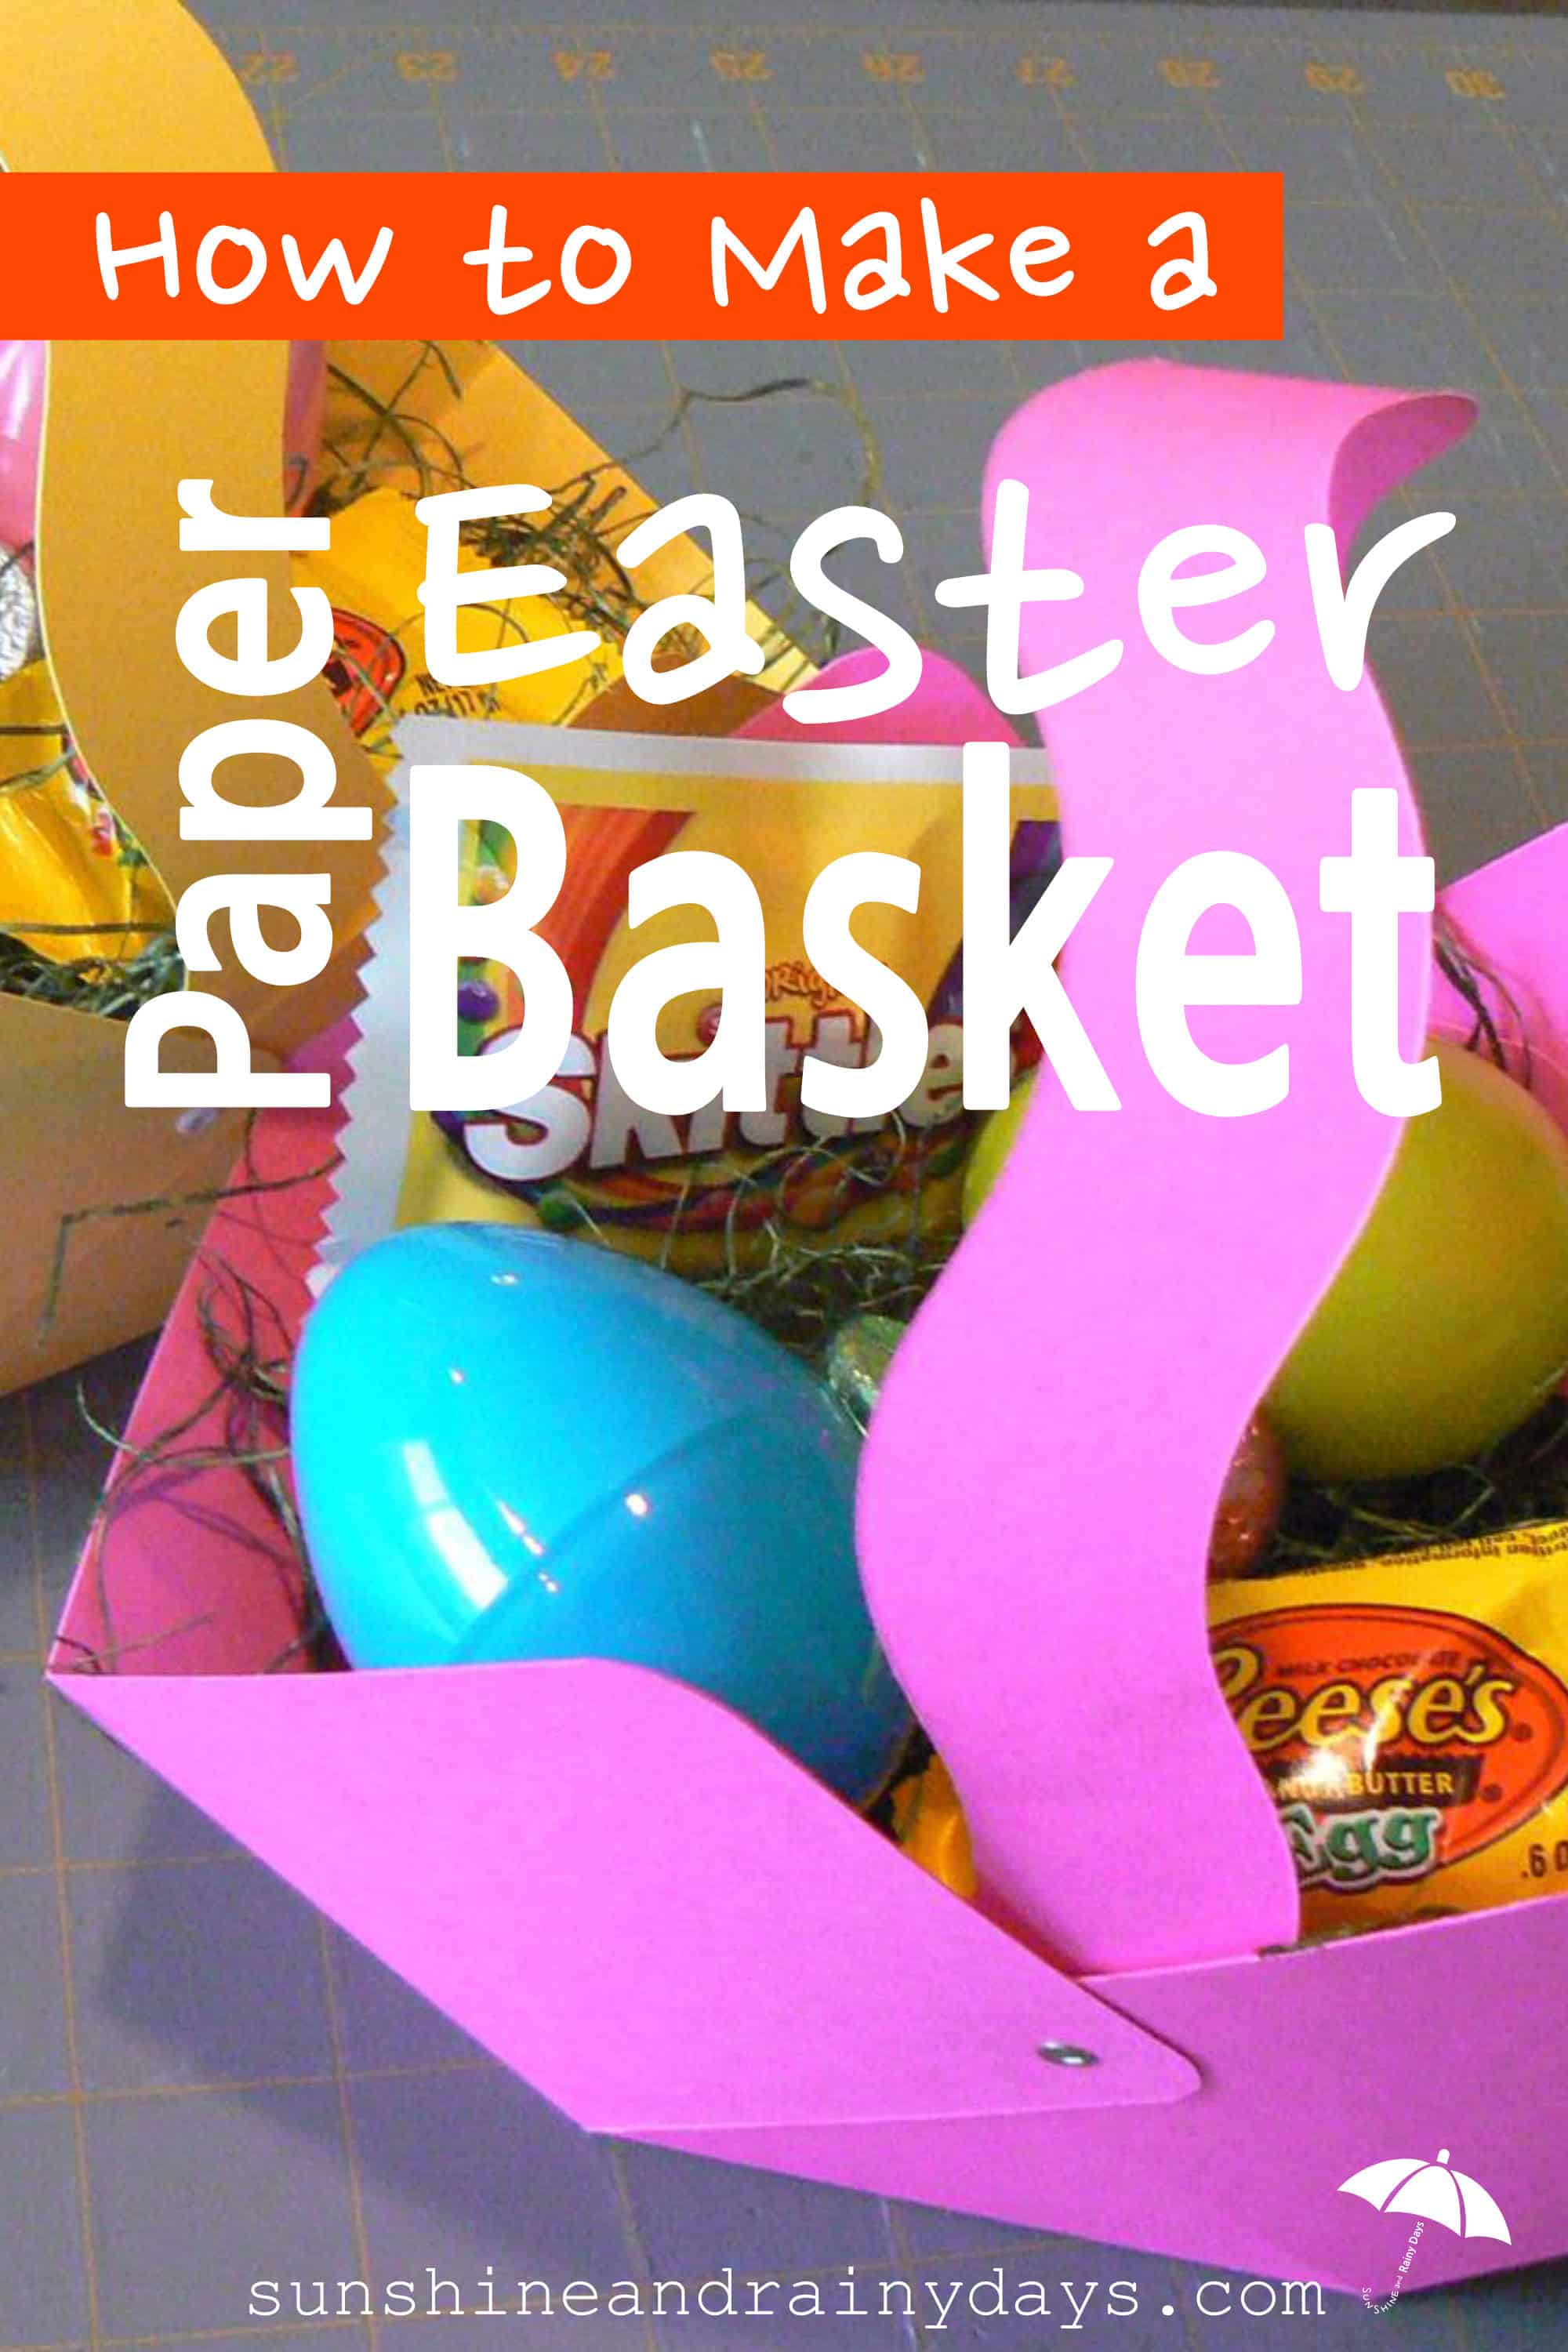 Create a Paper Easter Basket to give to teachers, friends, co-workers, and even your own kids! Fill them up and have fun blessing someone with an awesome treat! The Paper Easter Basket is incredibly inexpensive to make considering the impact it gives.